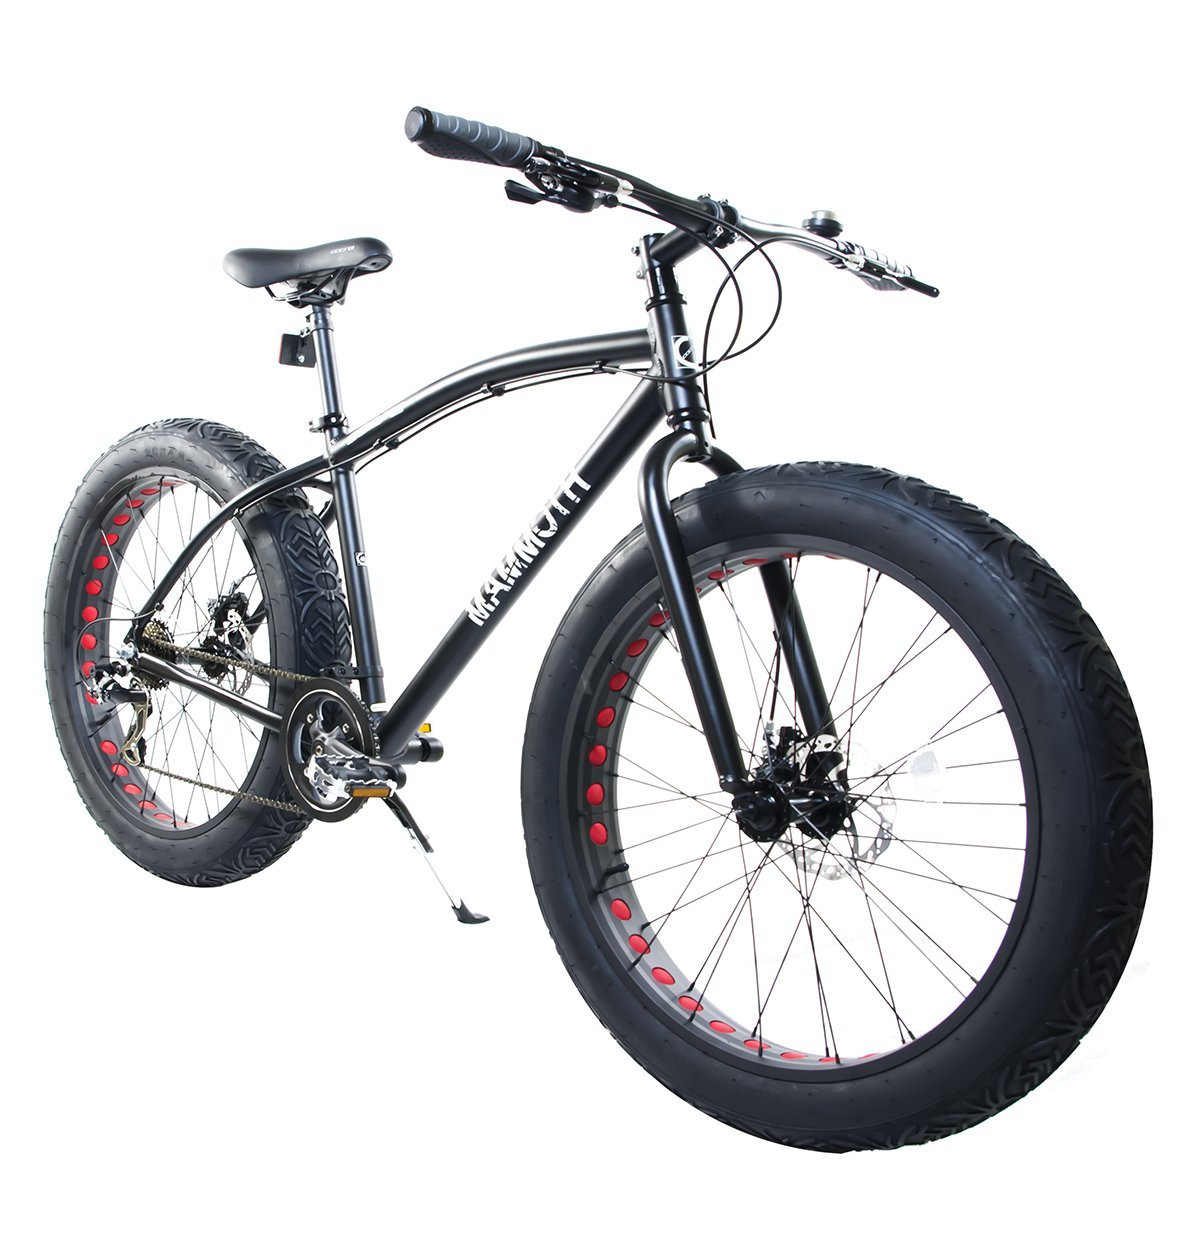 Alton mammoth fat tire bike